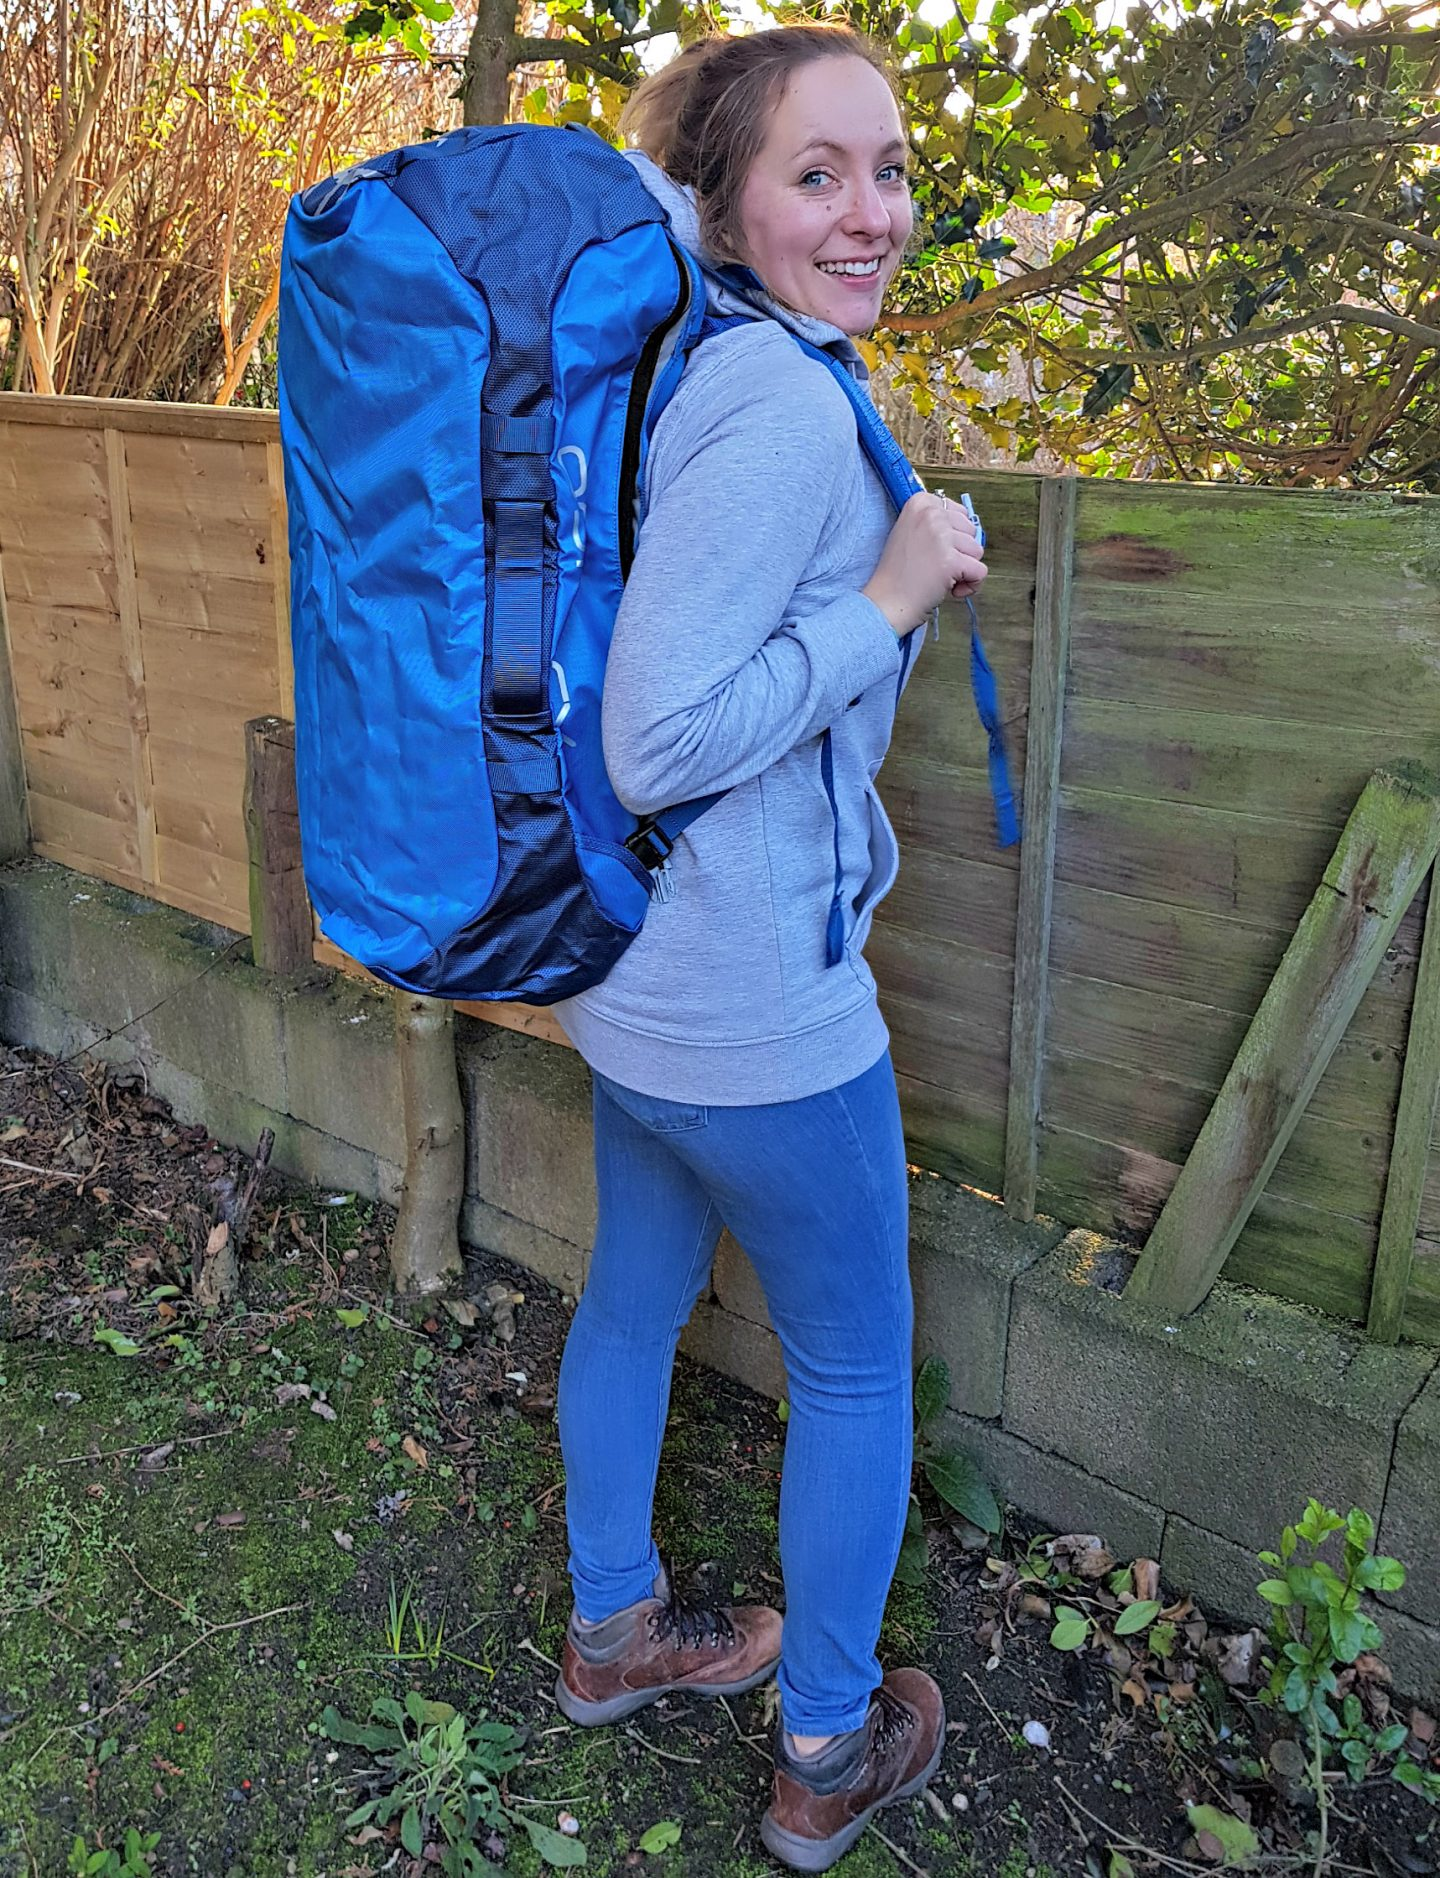 osprey transporter review